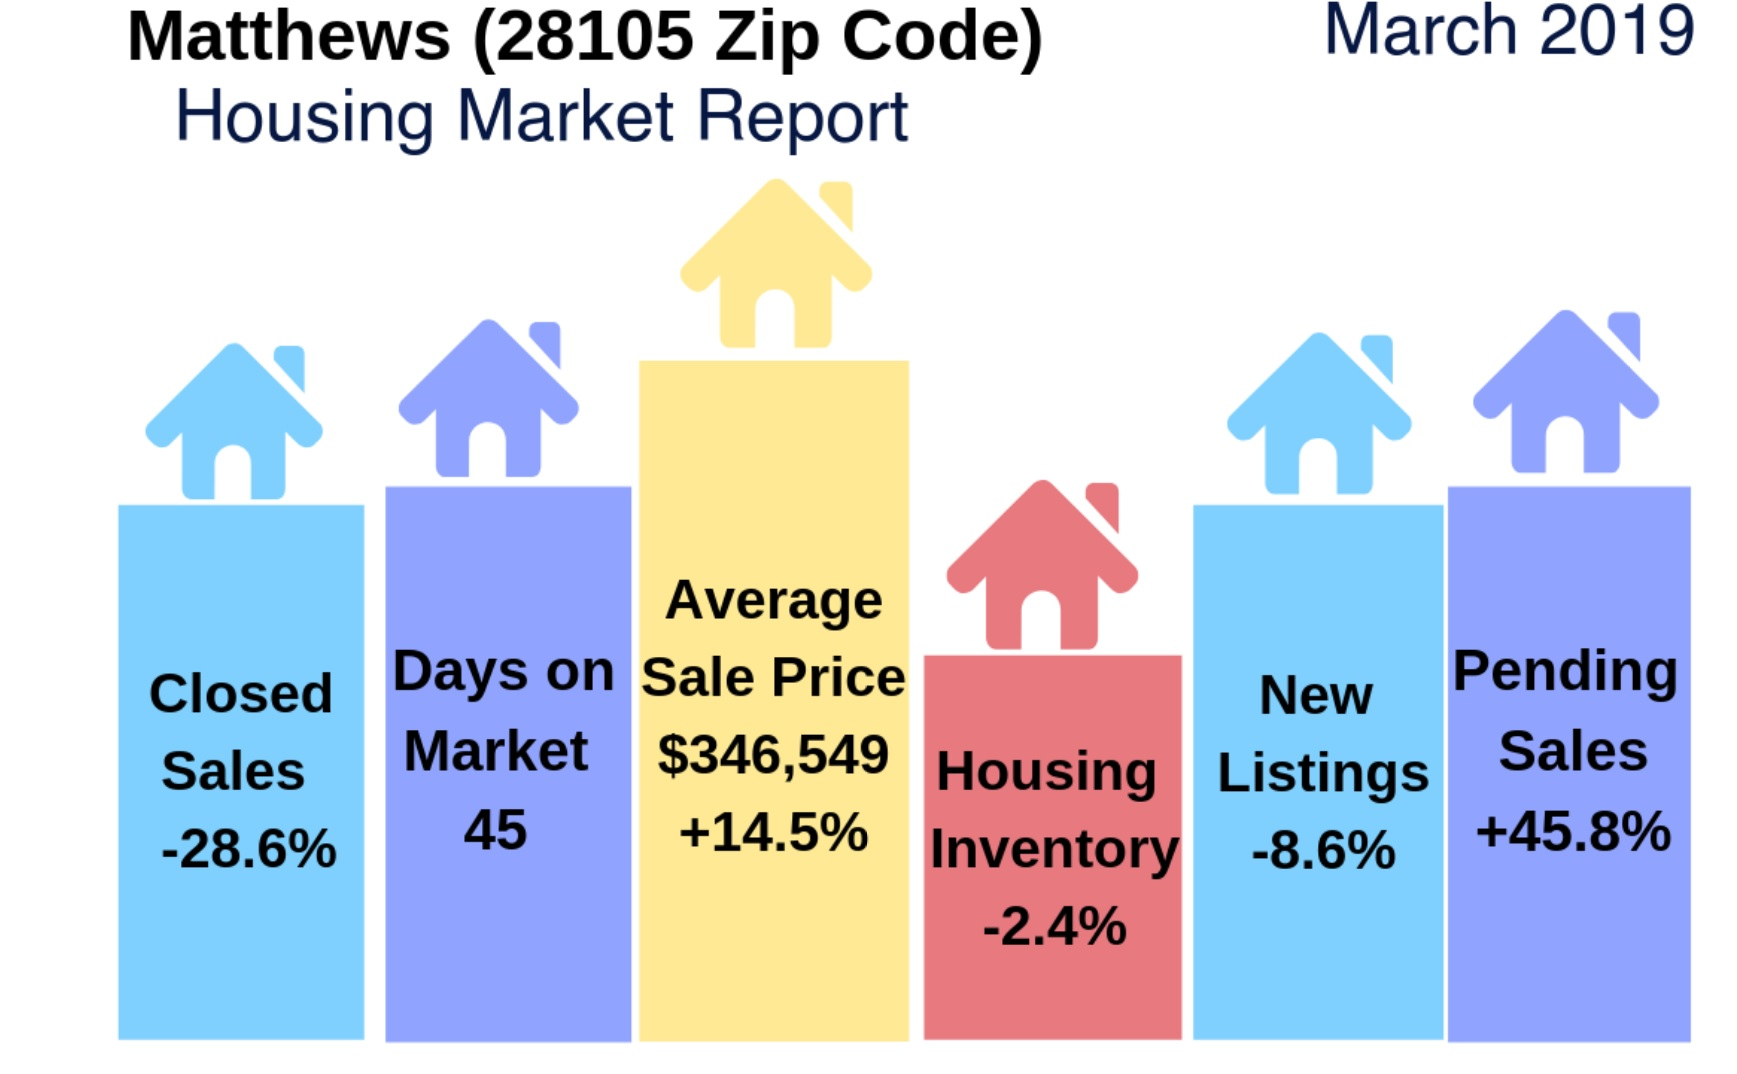 Matthews, NC (28105 Zip Code) Housing Market Update & Video: March 2019